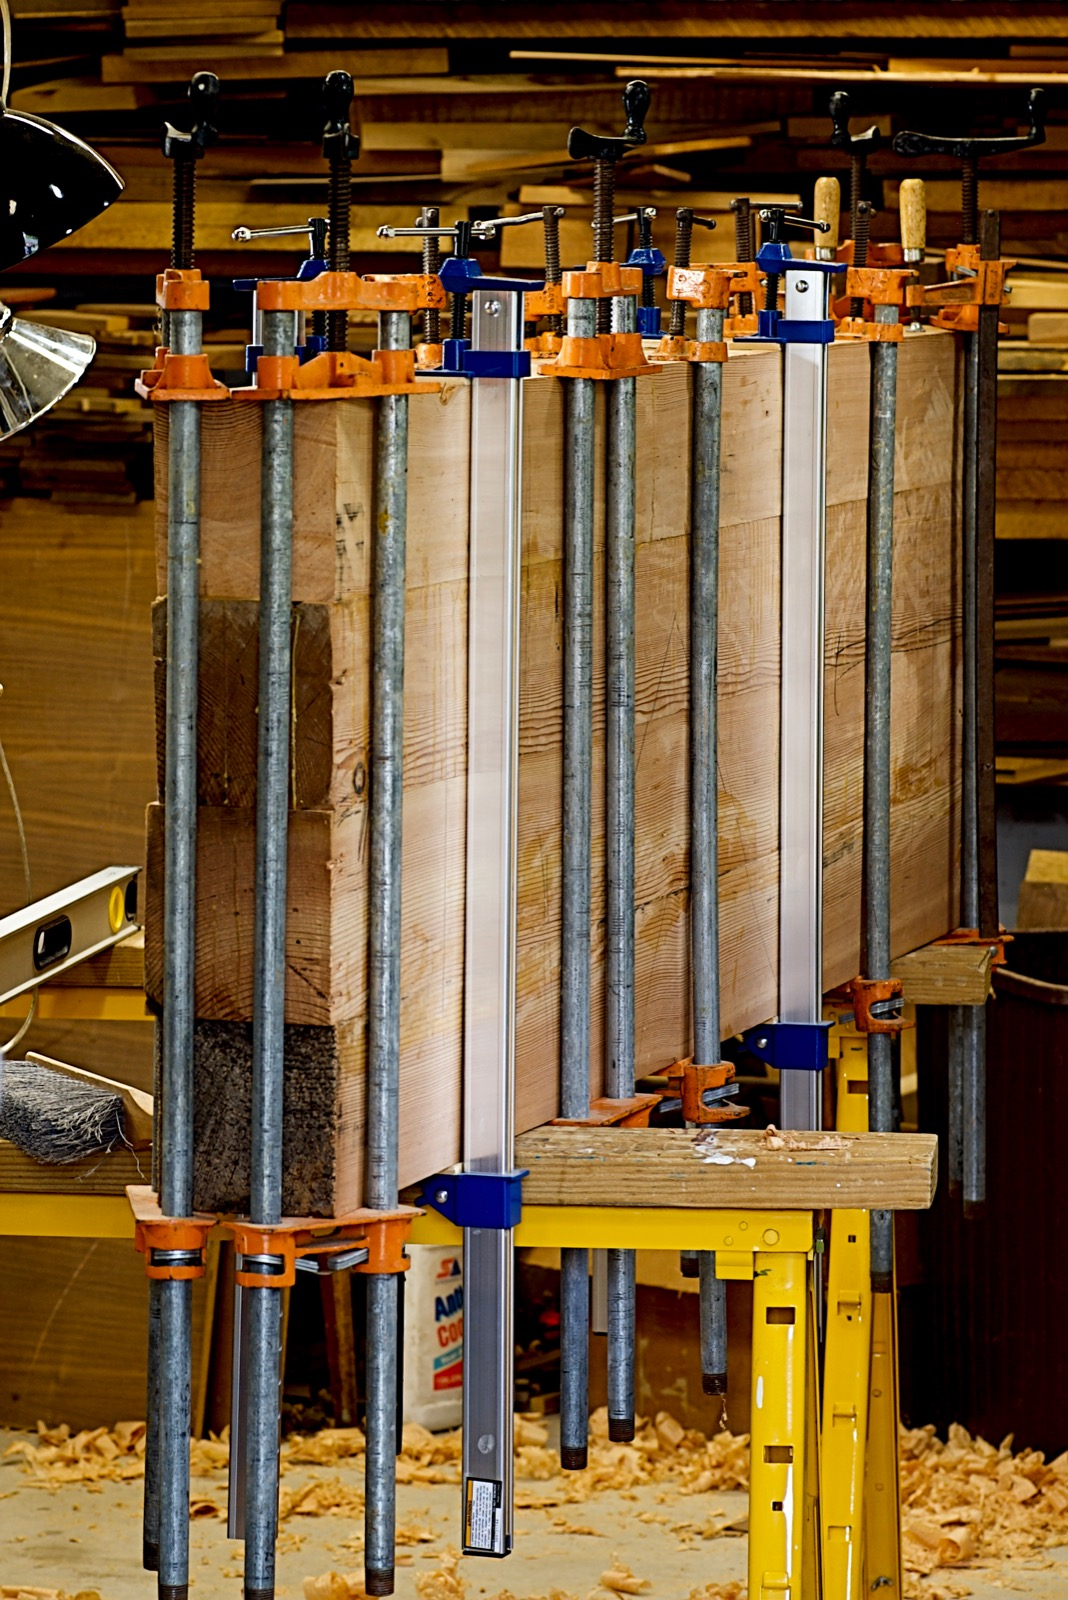 The full top of four beams in clamps.